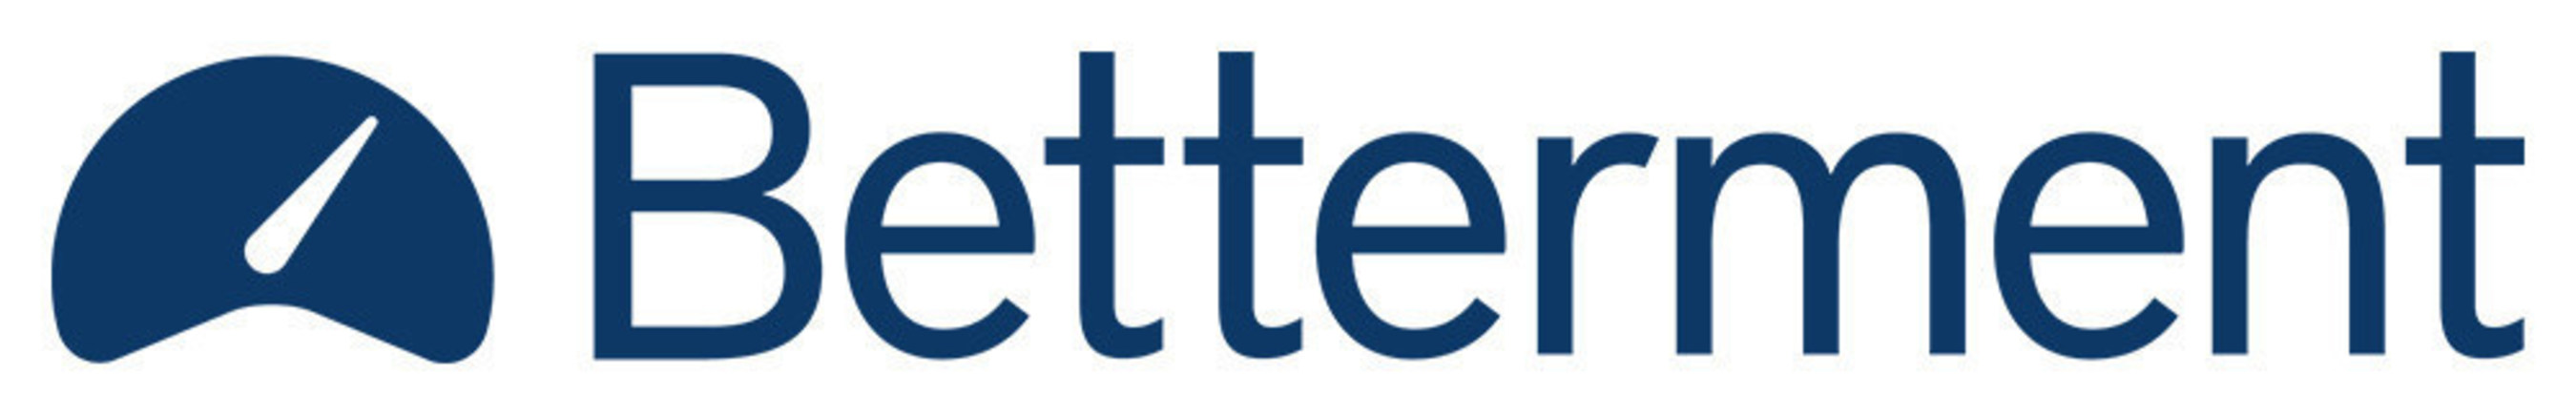 Betterment Announced as Partner with Social Security Administration to Help Workers Plan for a Better Retirement